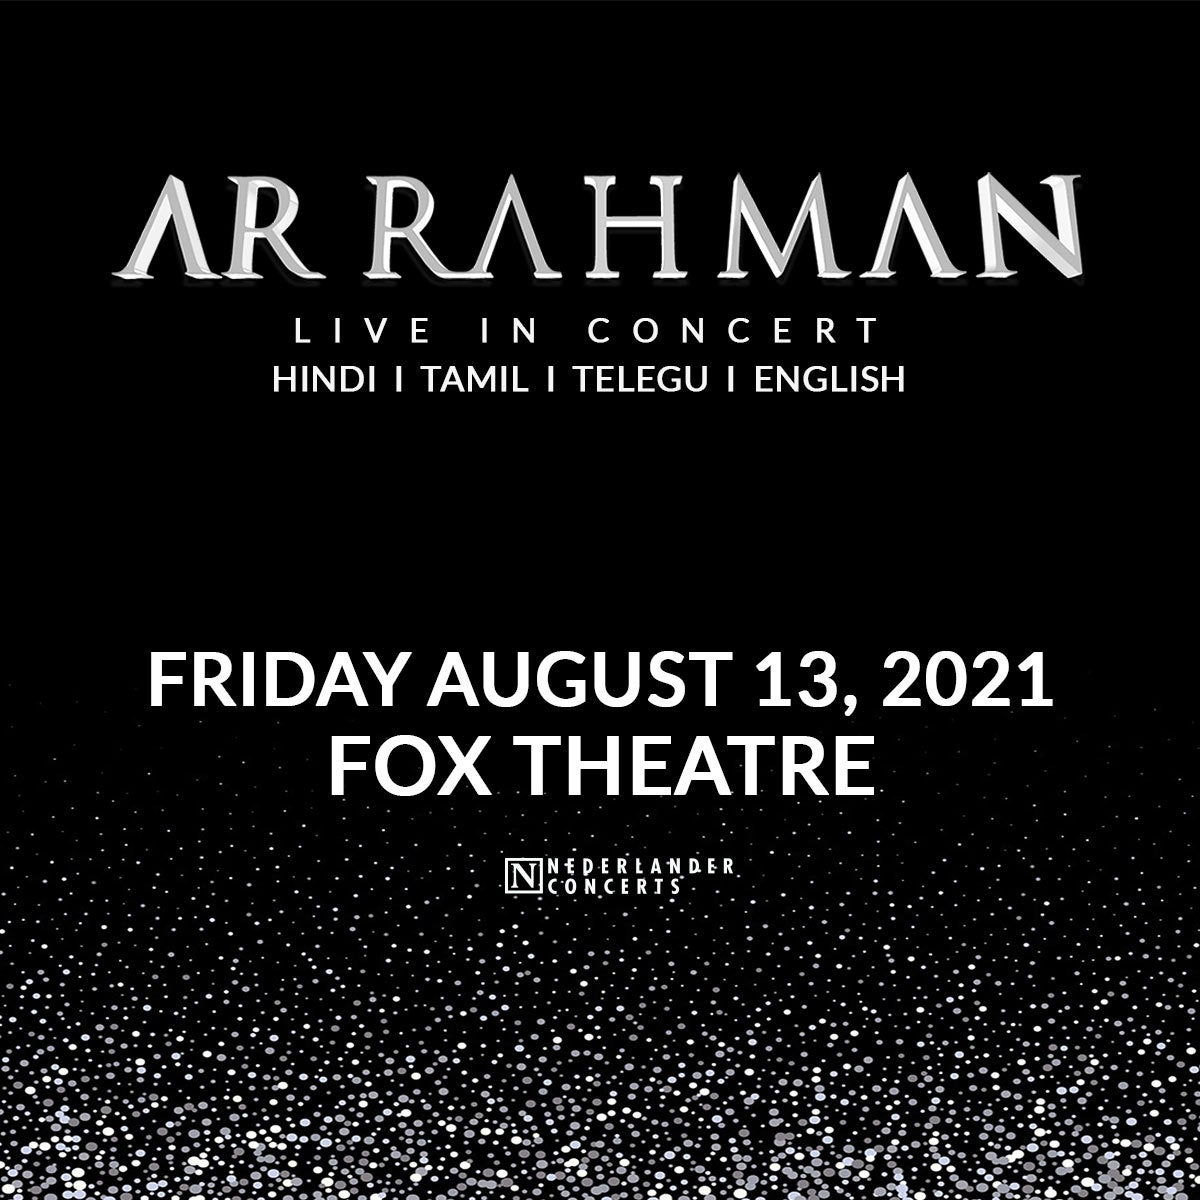 More Info for JUST ANNOUNCED: A.R. RAHMAN IS NOW CANCELED